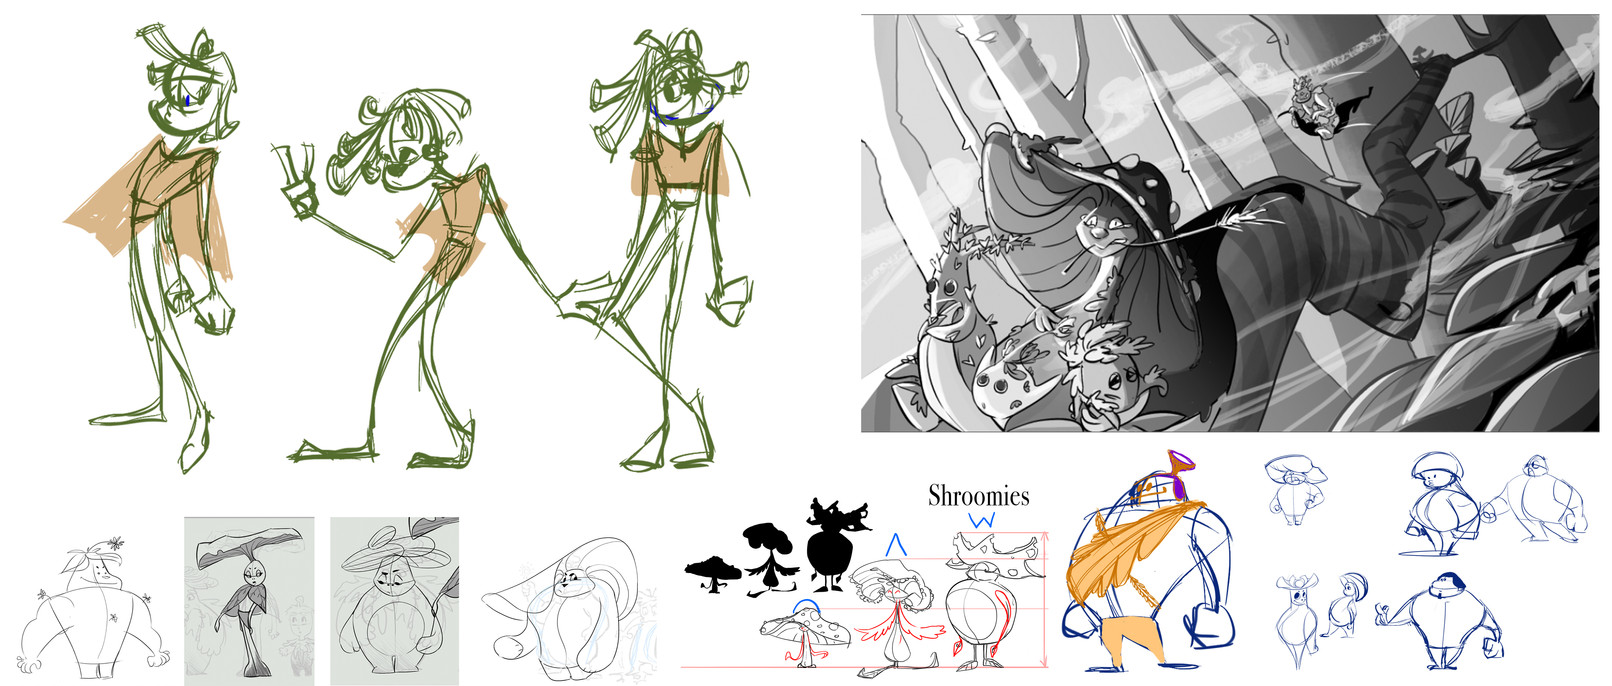 Additonal early sketches of main characters